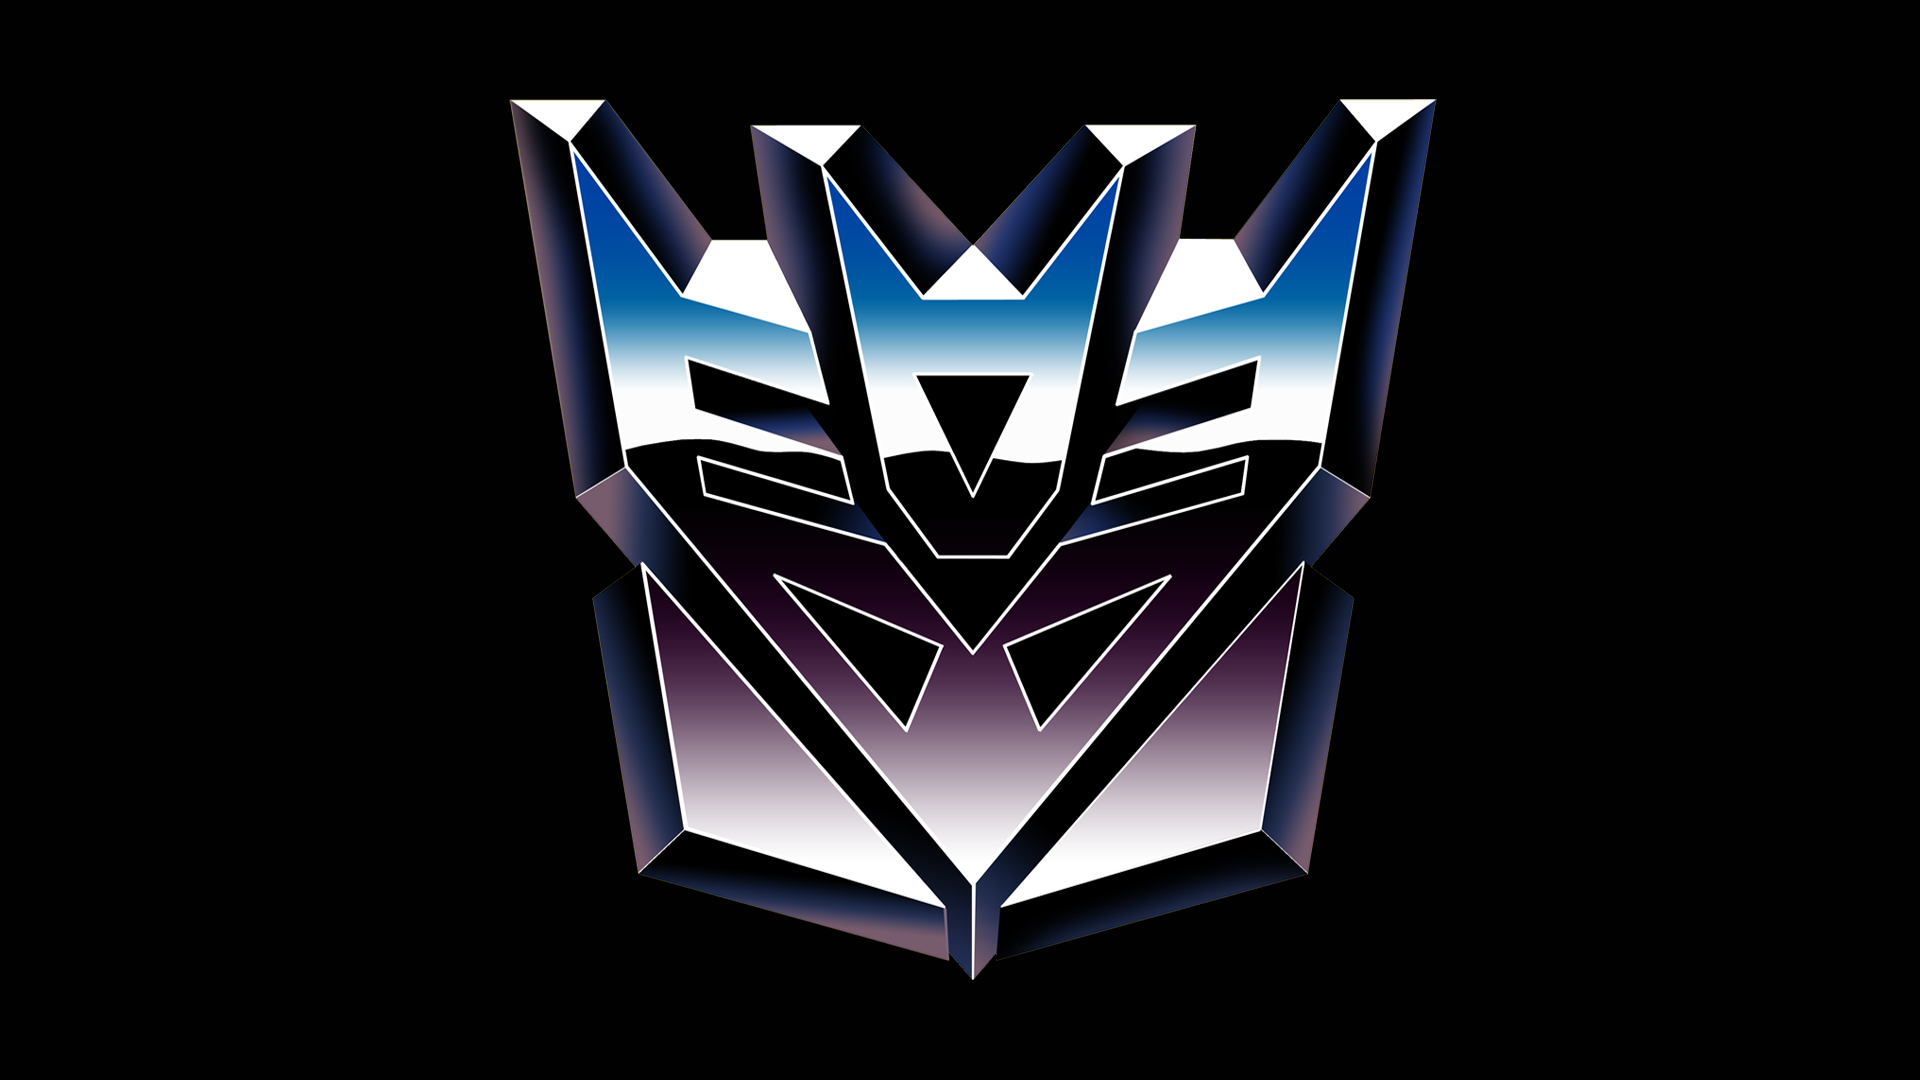 decepticon logo wallpaper for iphone